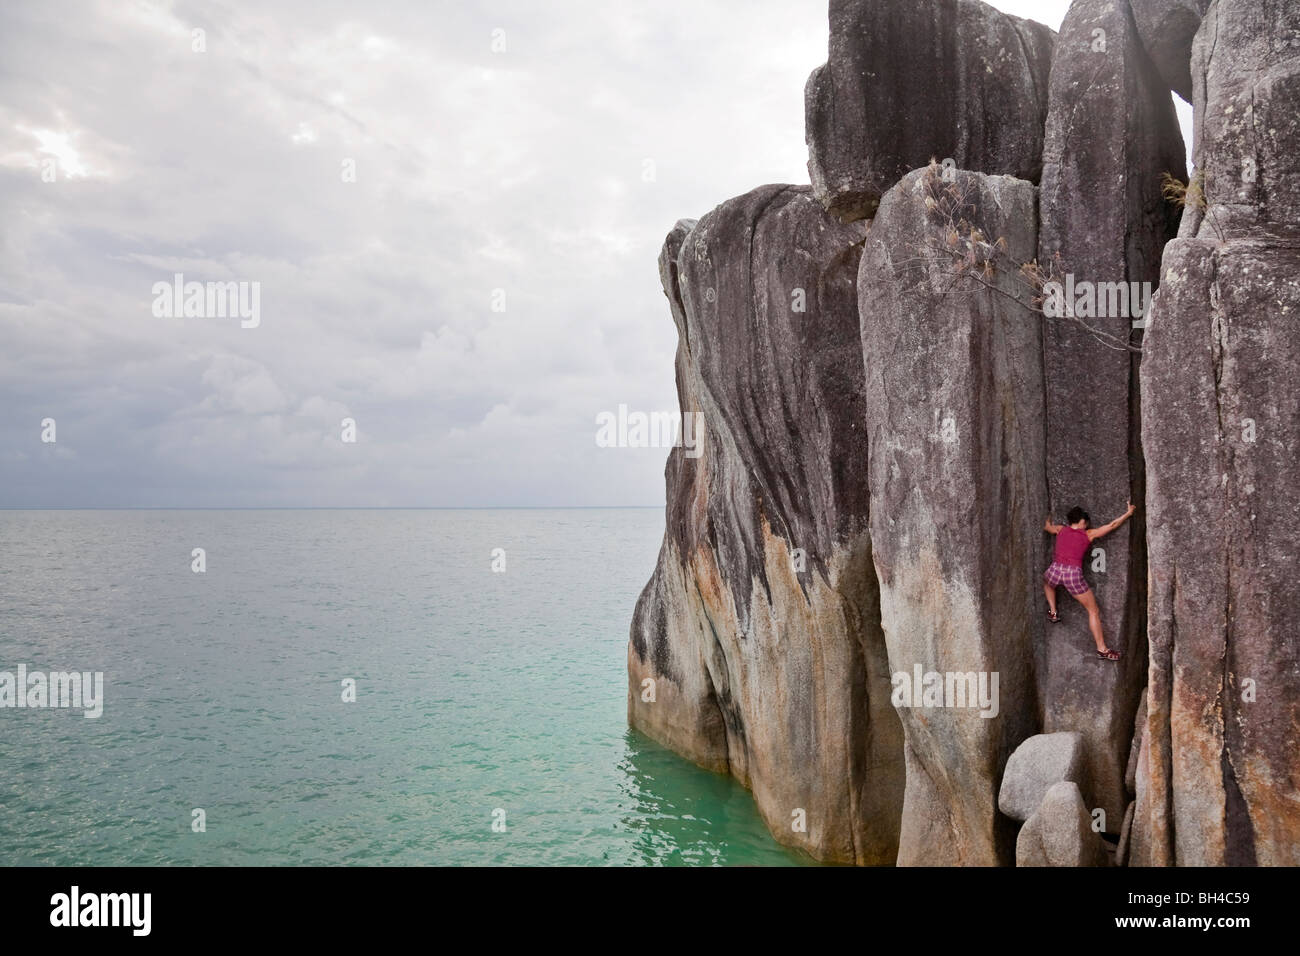 A woman climbs a granite rock pillar over the ocean on Coombe Island, Queensland, Australia. - Stock Image